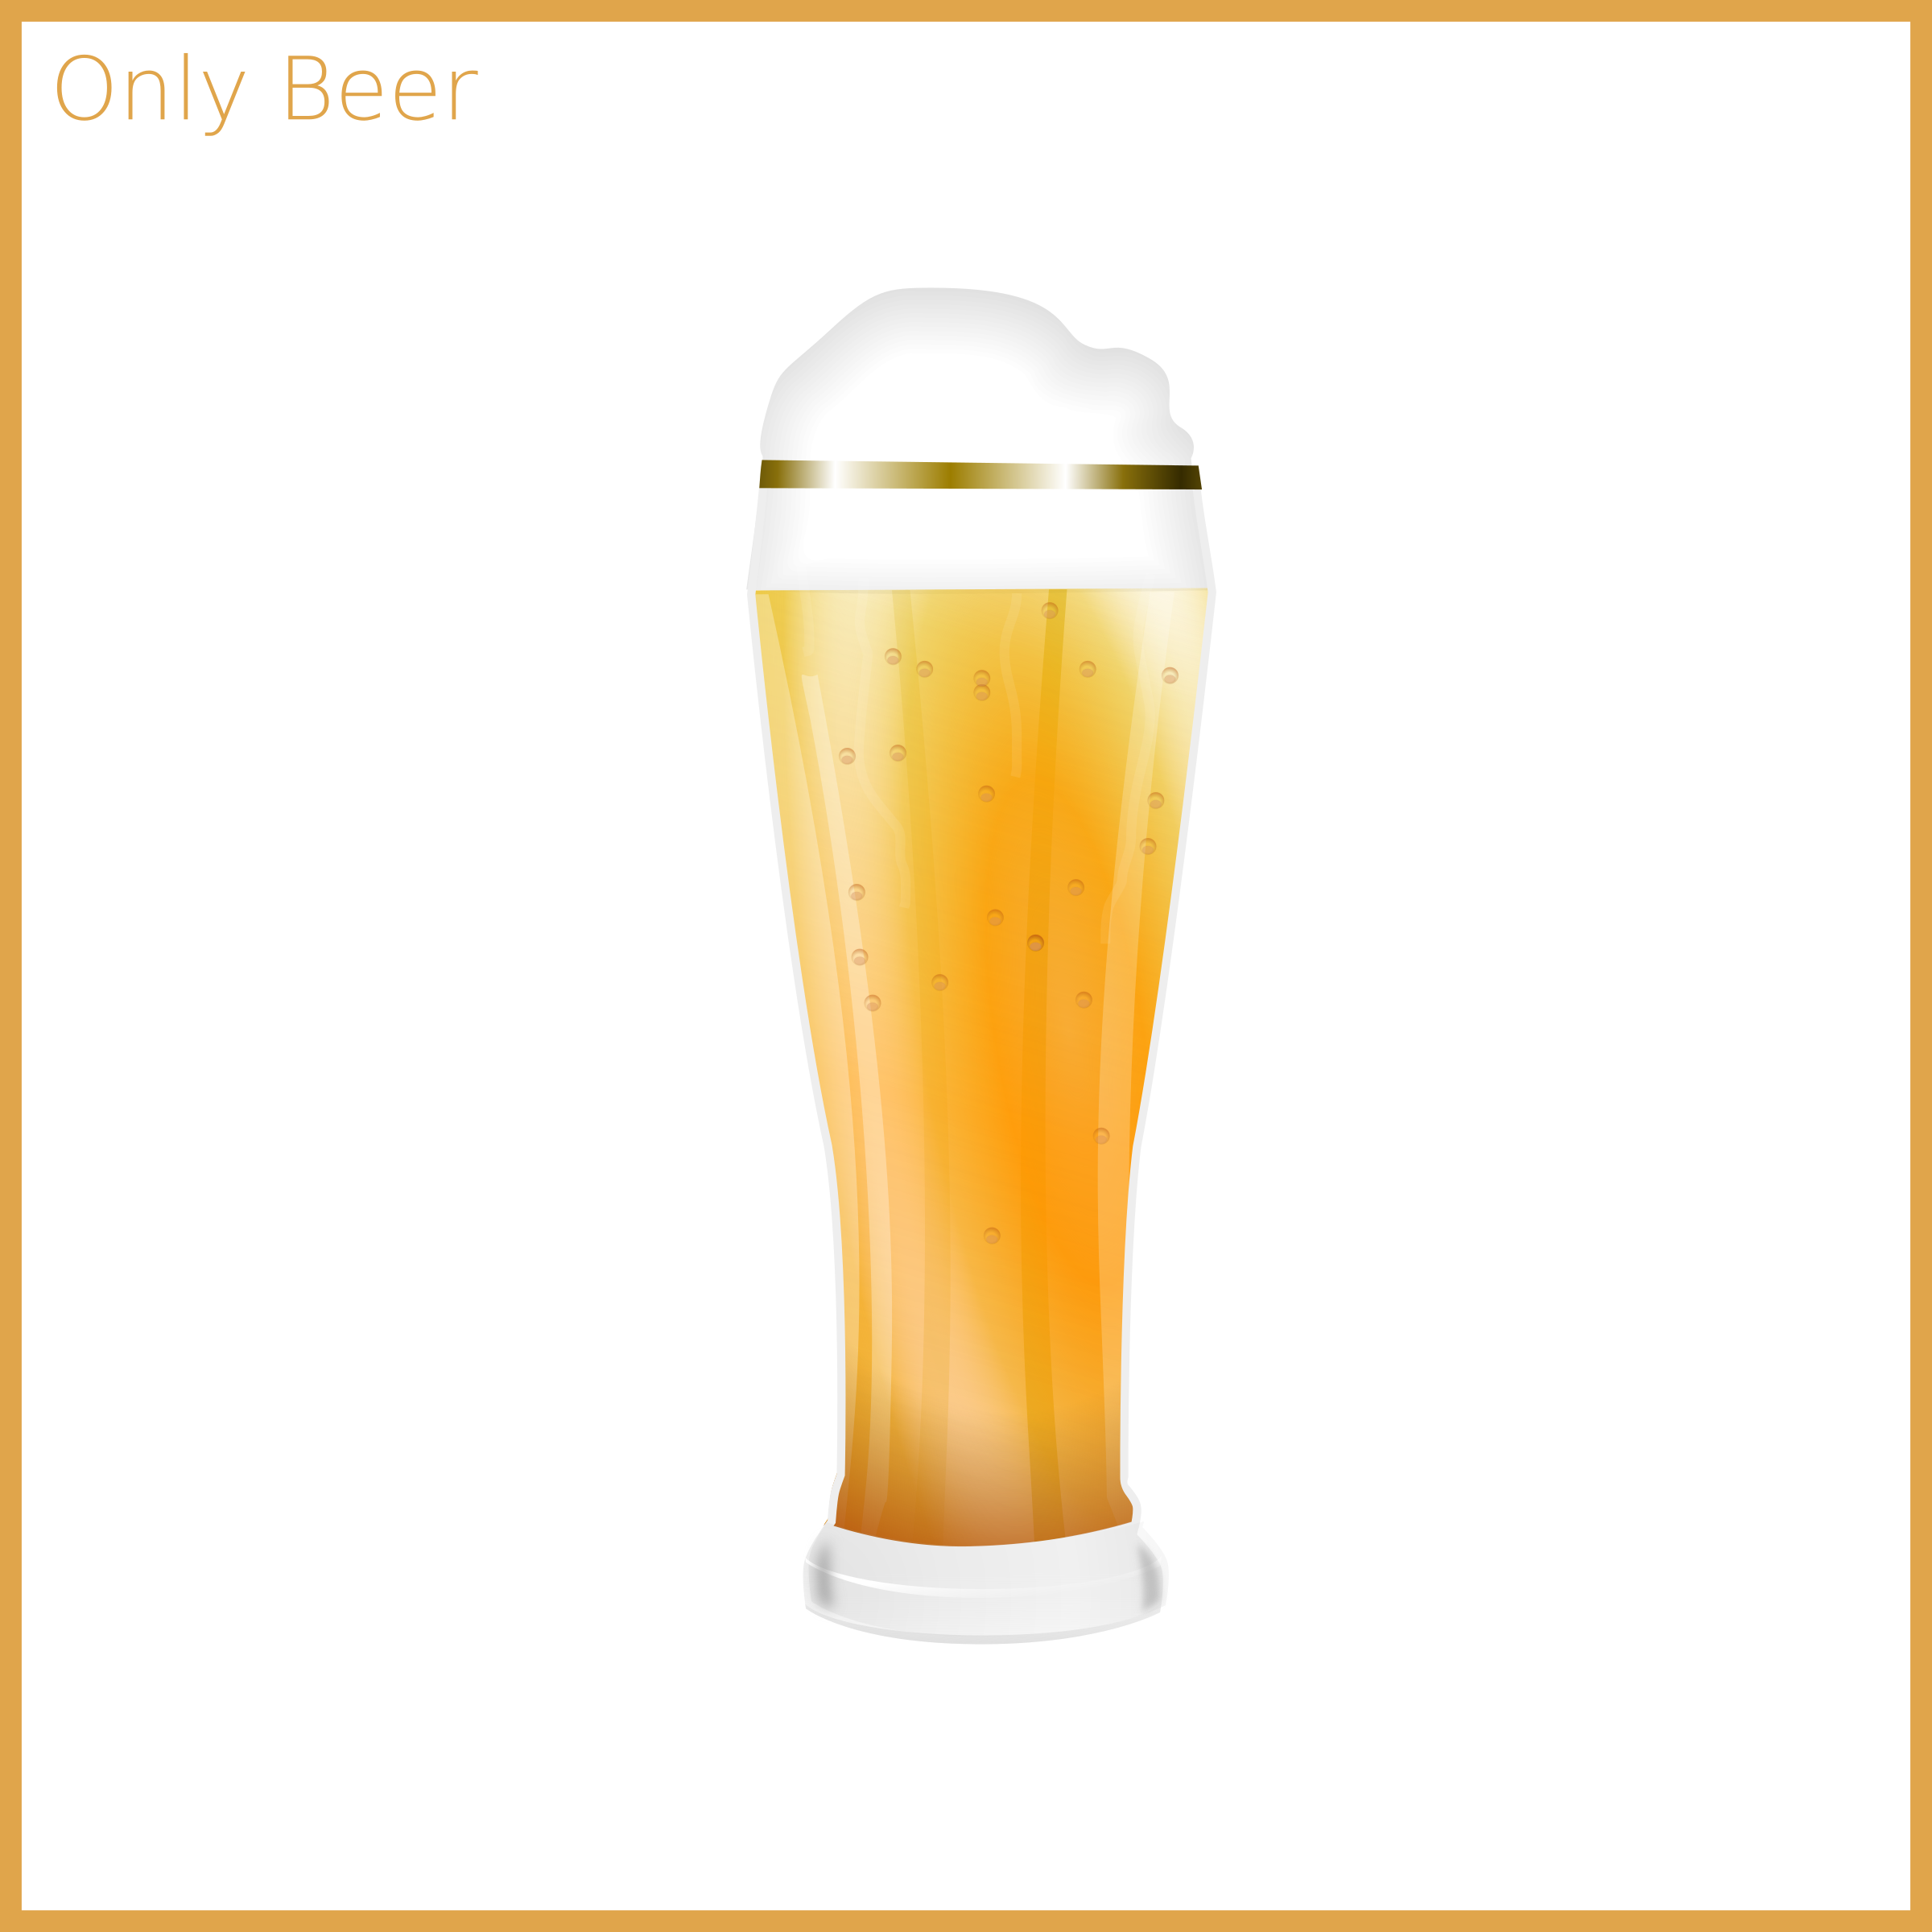 Only Beer by dordy